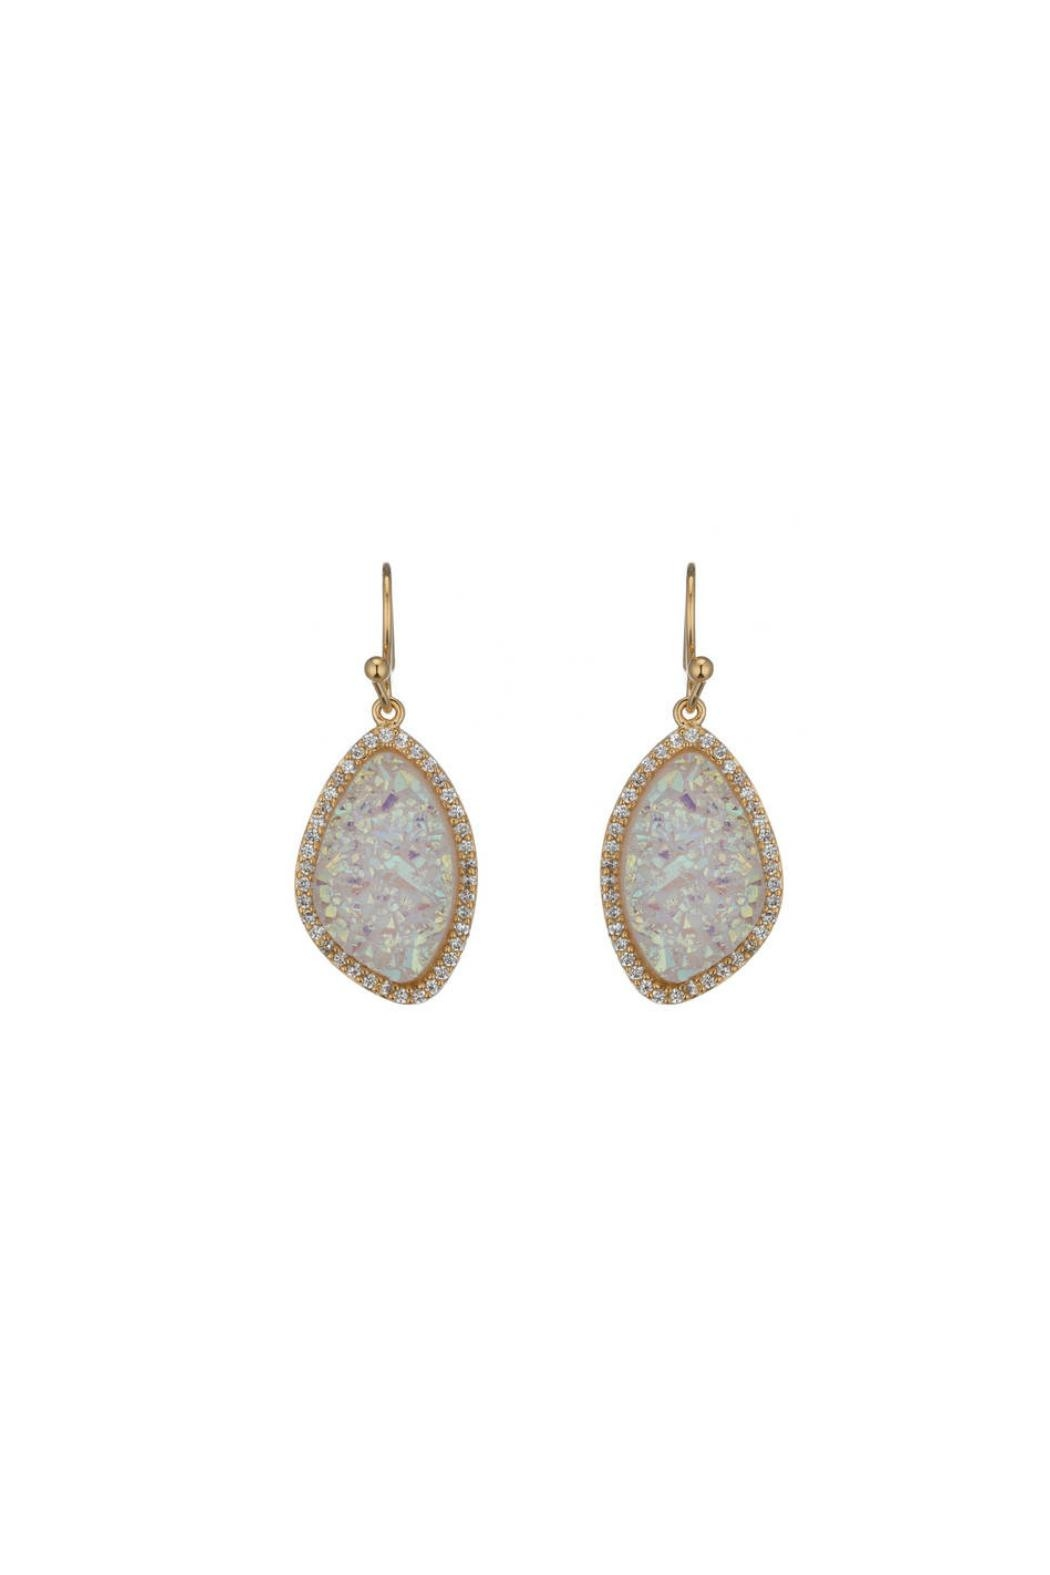 Gemma Collection Druzy Pave Earrings - Main Image